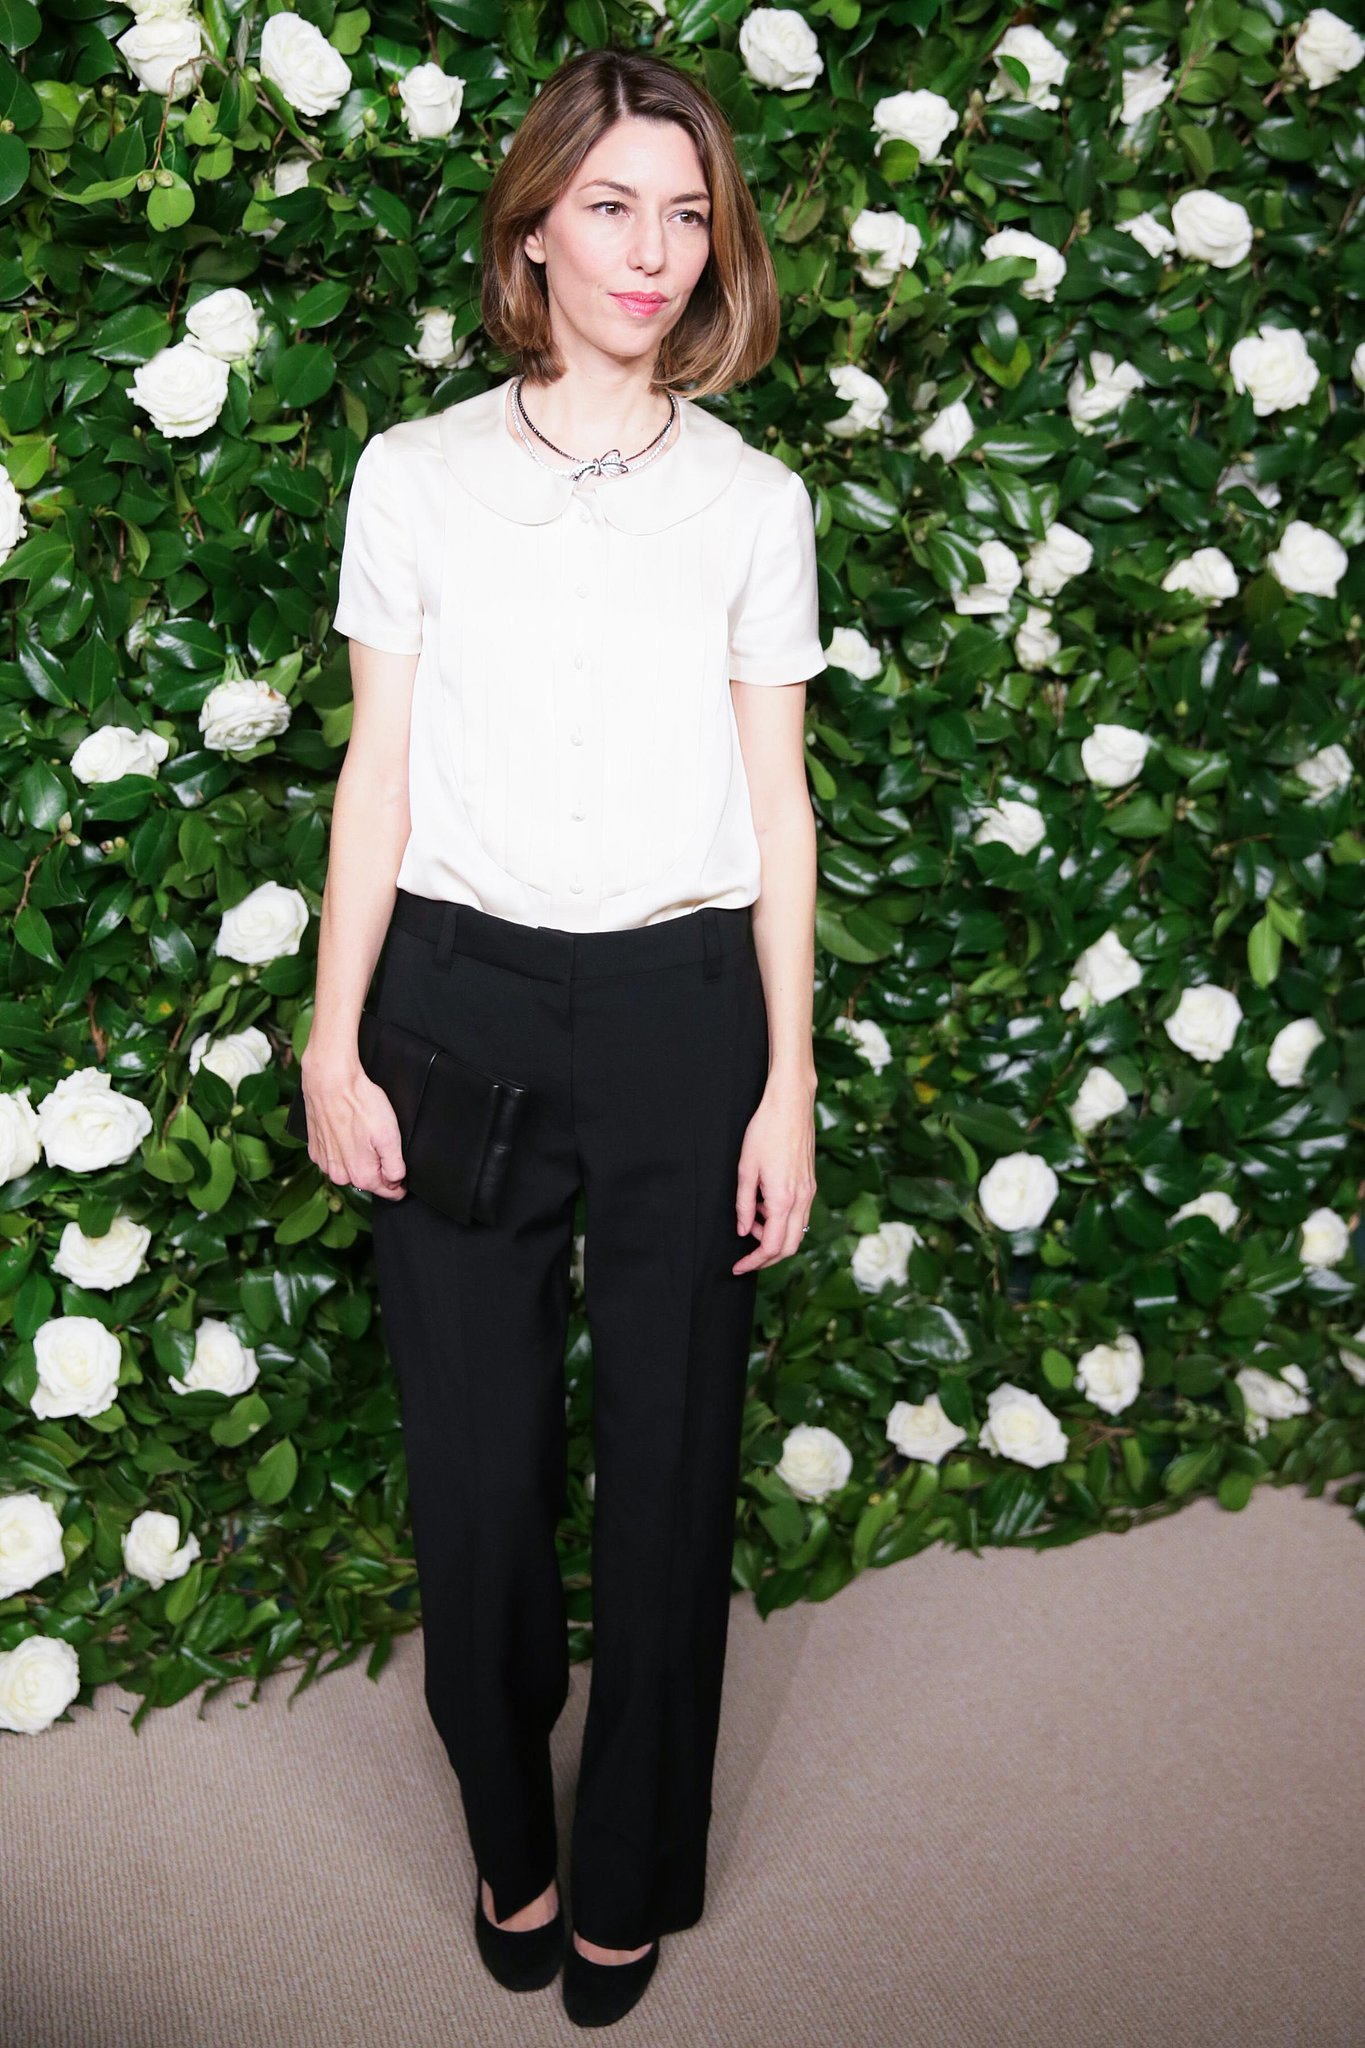 Sofia Coppola arrived for the MoMA Film Benefit in Chanel's blouse paired with the label's Lueur d'un Soir necklace.